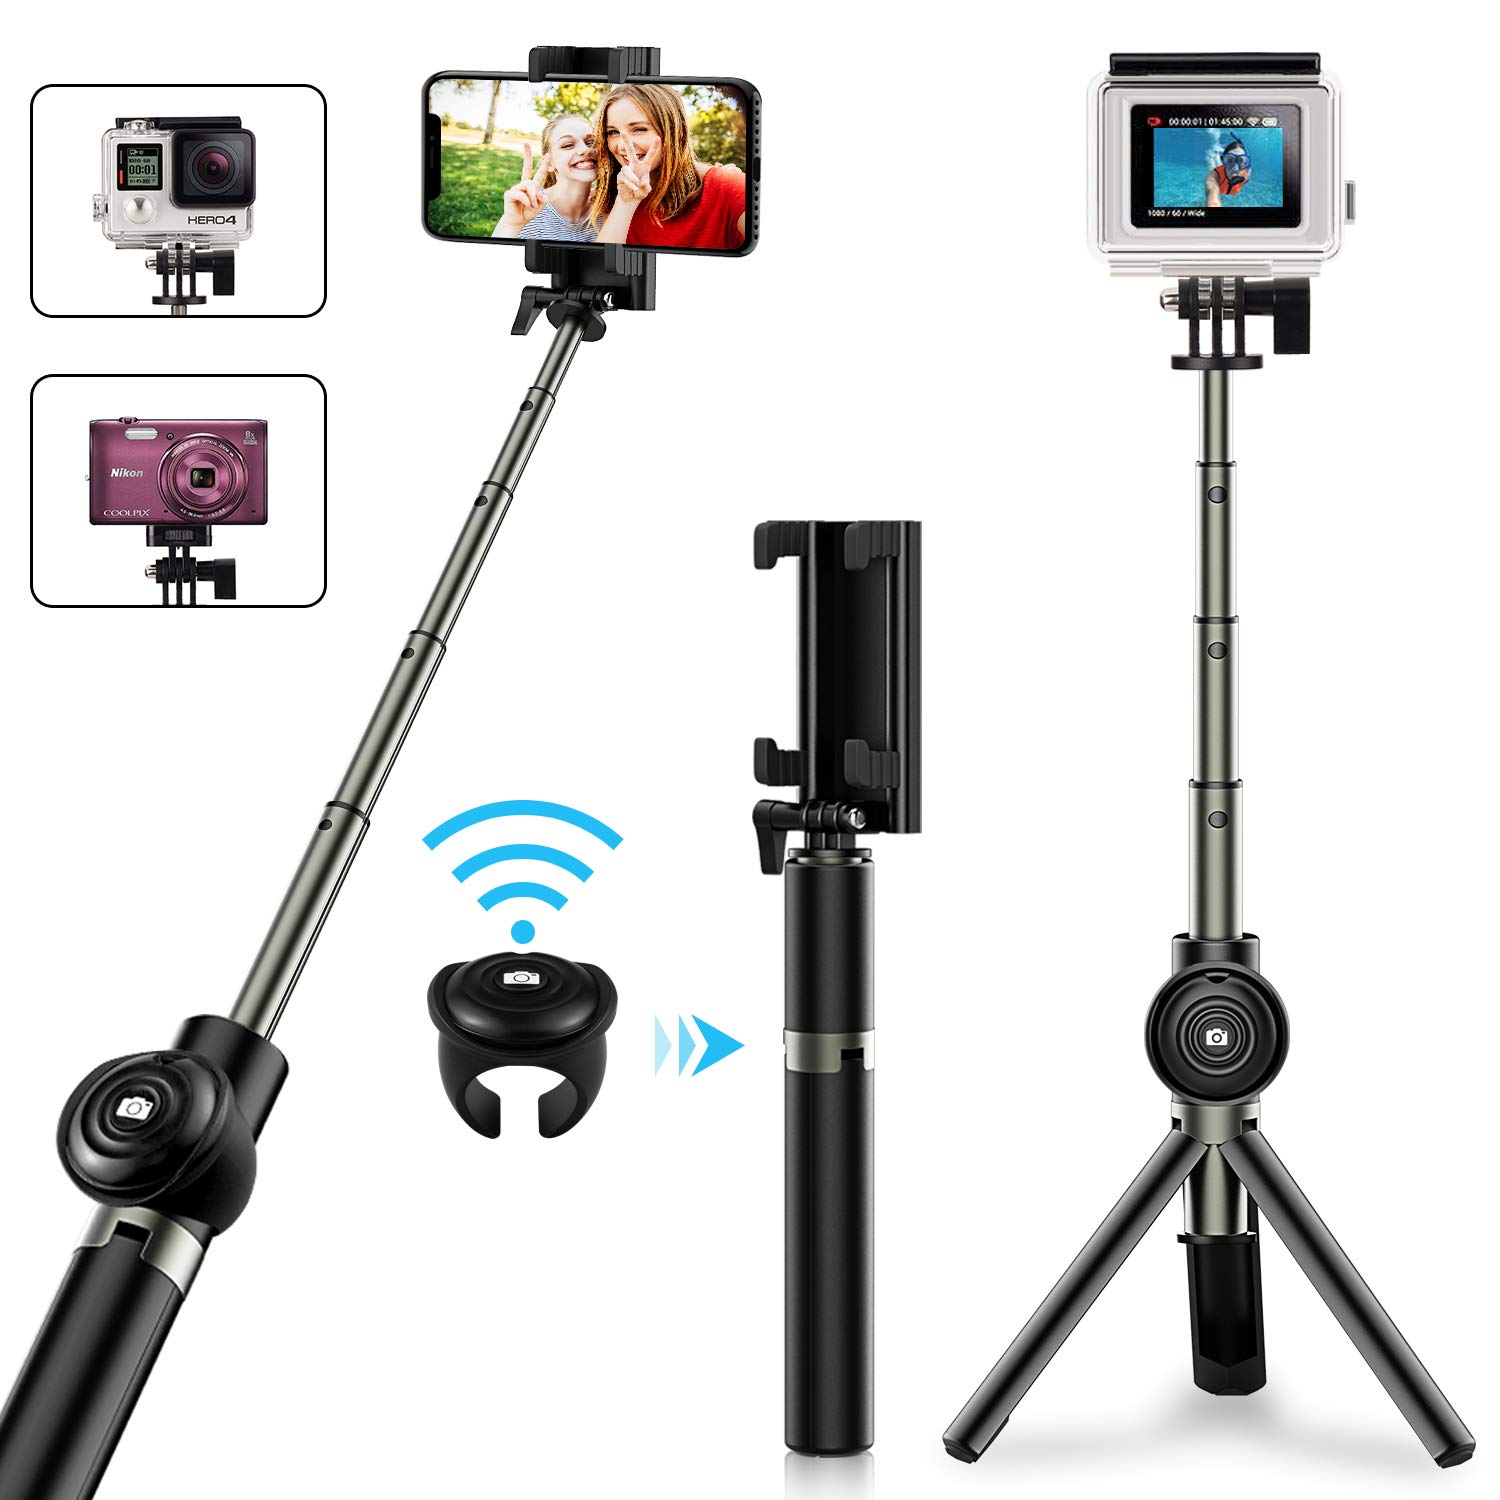 Selfie Stick Tripod, Vproof Extendable Bluetooth Selfie Stick with Detachable Wireless Remote, Compact Monopod for iPhone Xs Max/XR/XS/X/7 Plus/6S Plus, Galaxy Note 9/S9, GoPro Cameras (Black) 1-ST-B